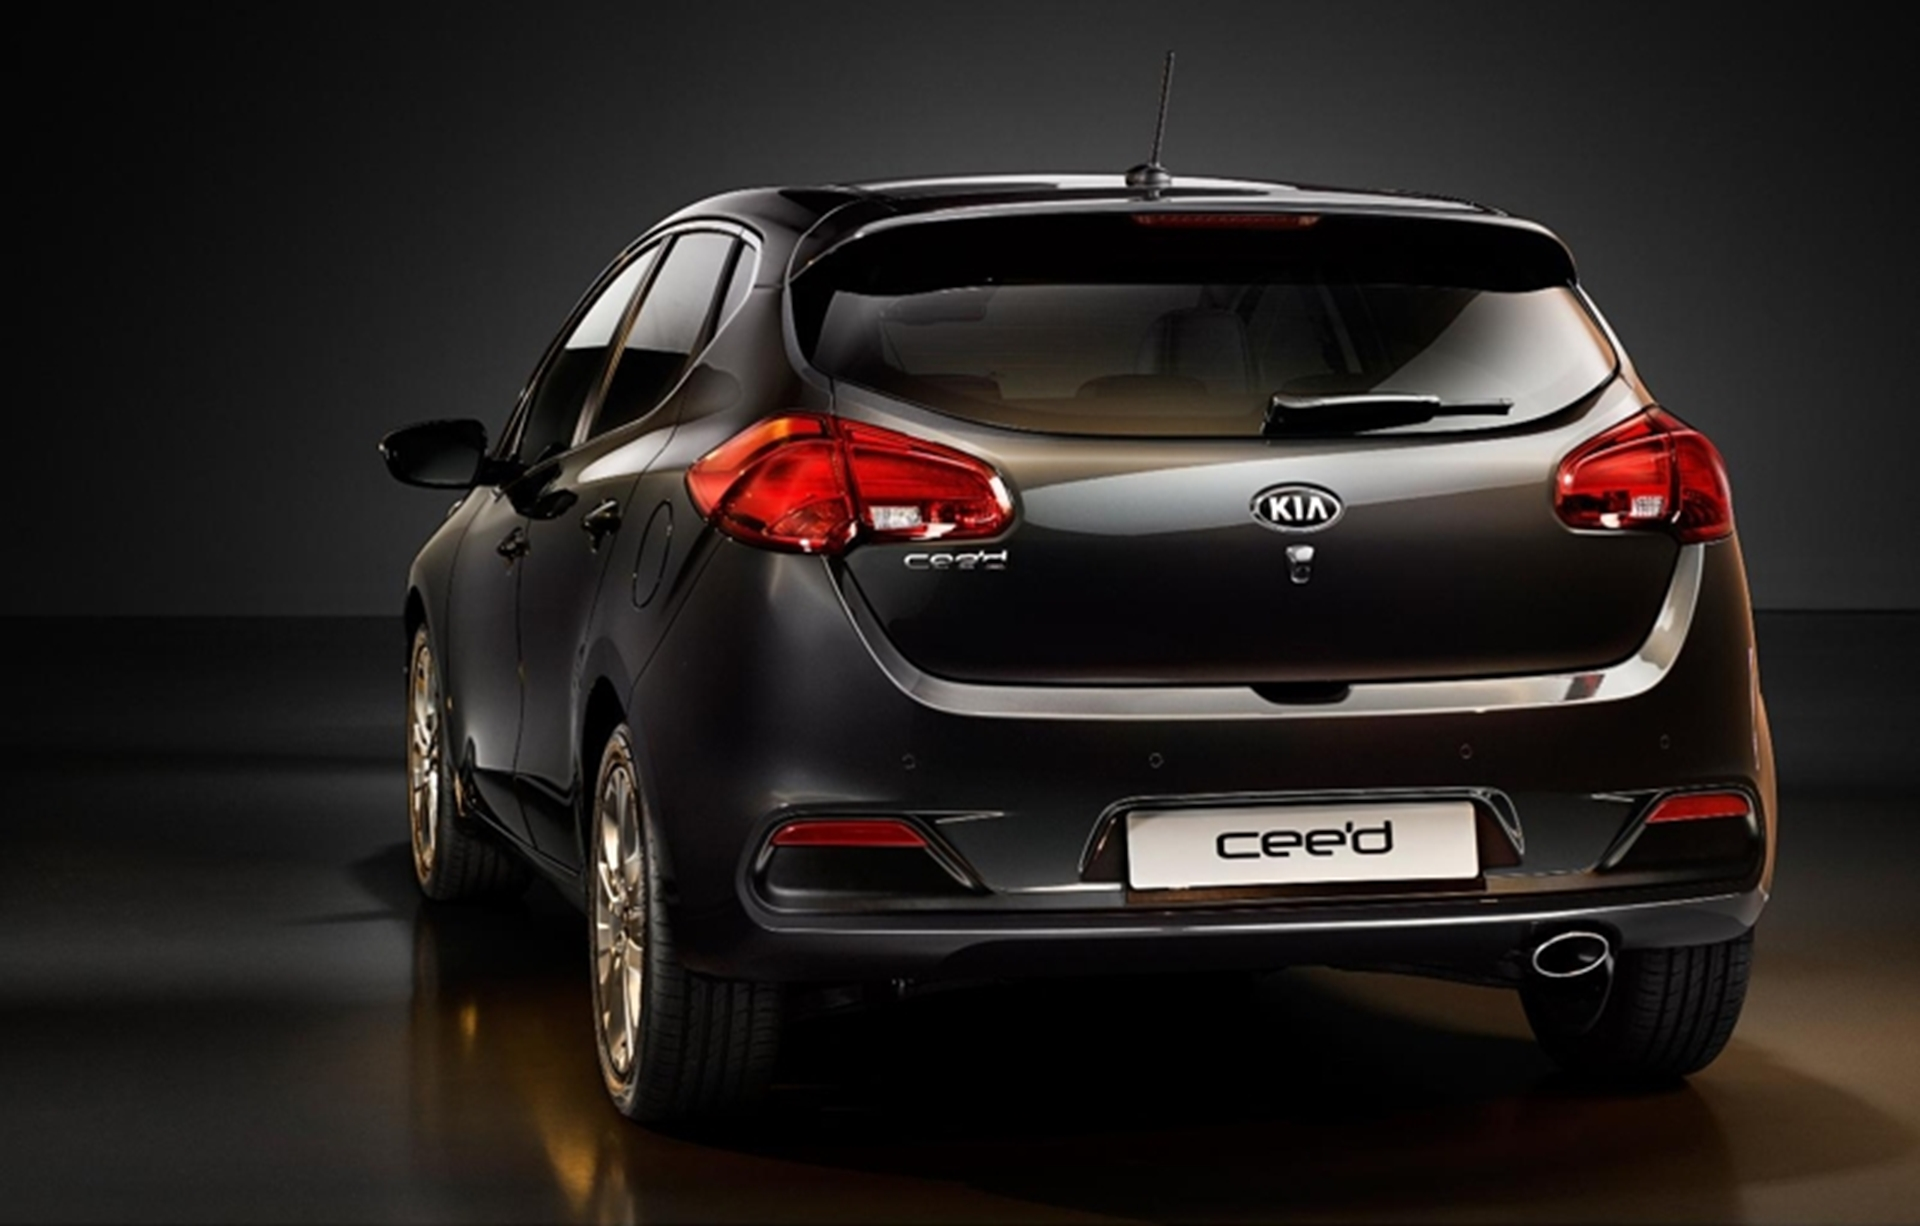 Kia Ceed Rear View